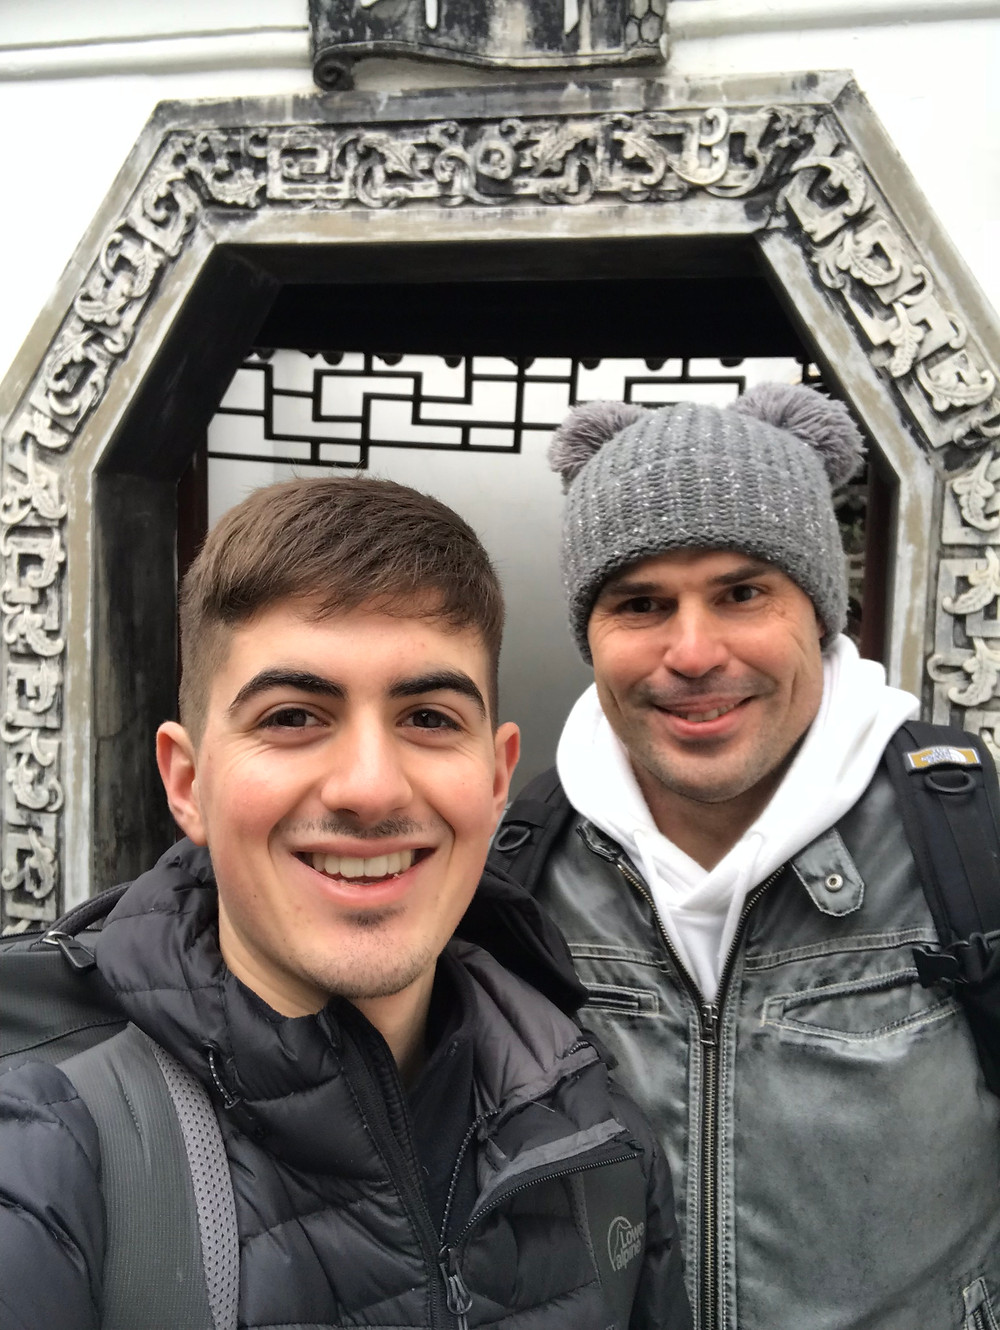 Temple Tours With My favourite Russian Friend and His Bobble Hat